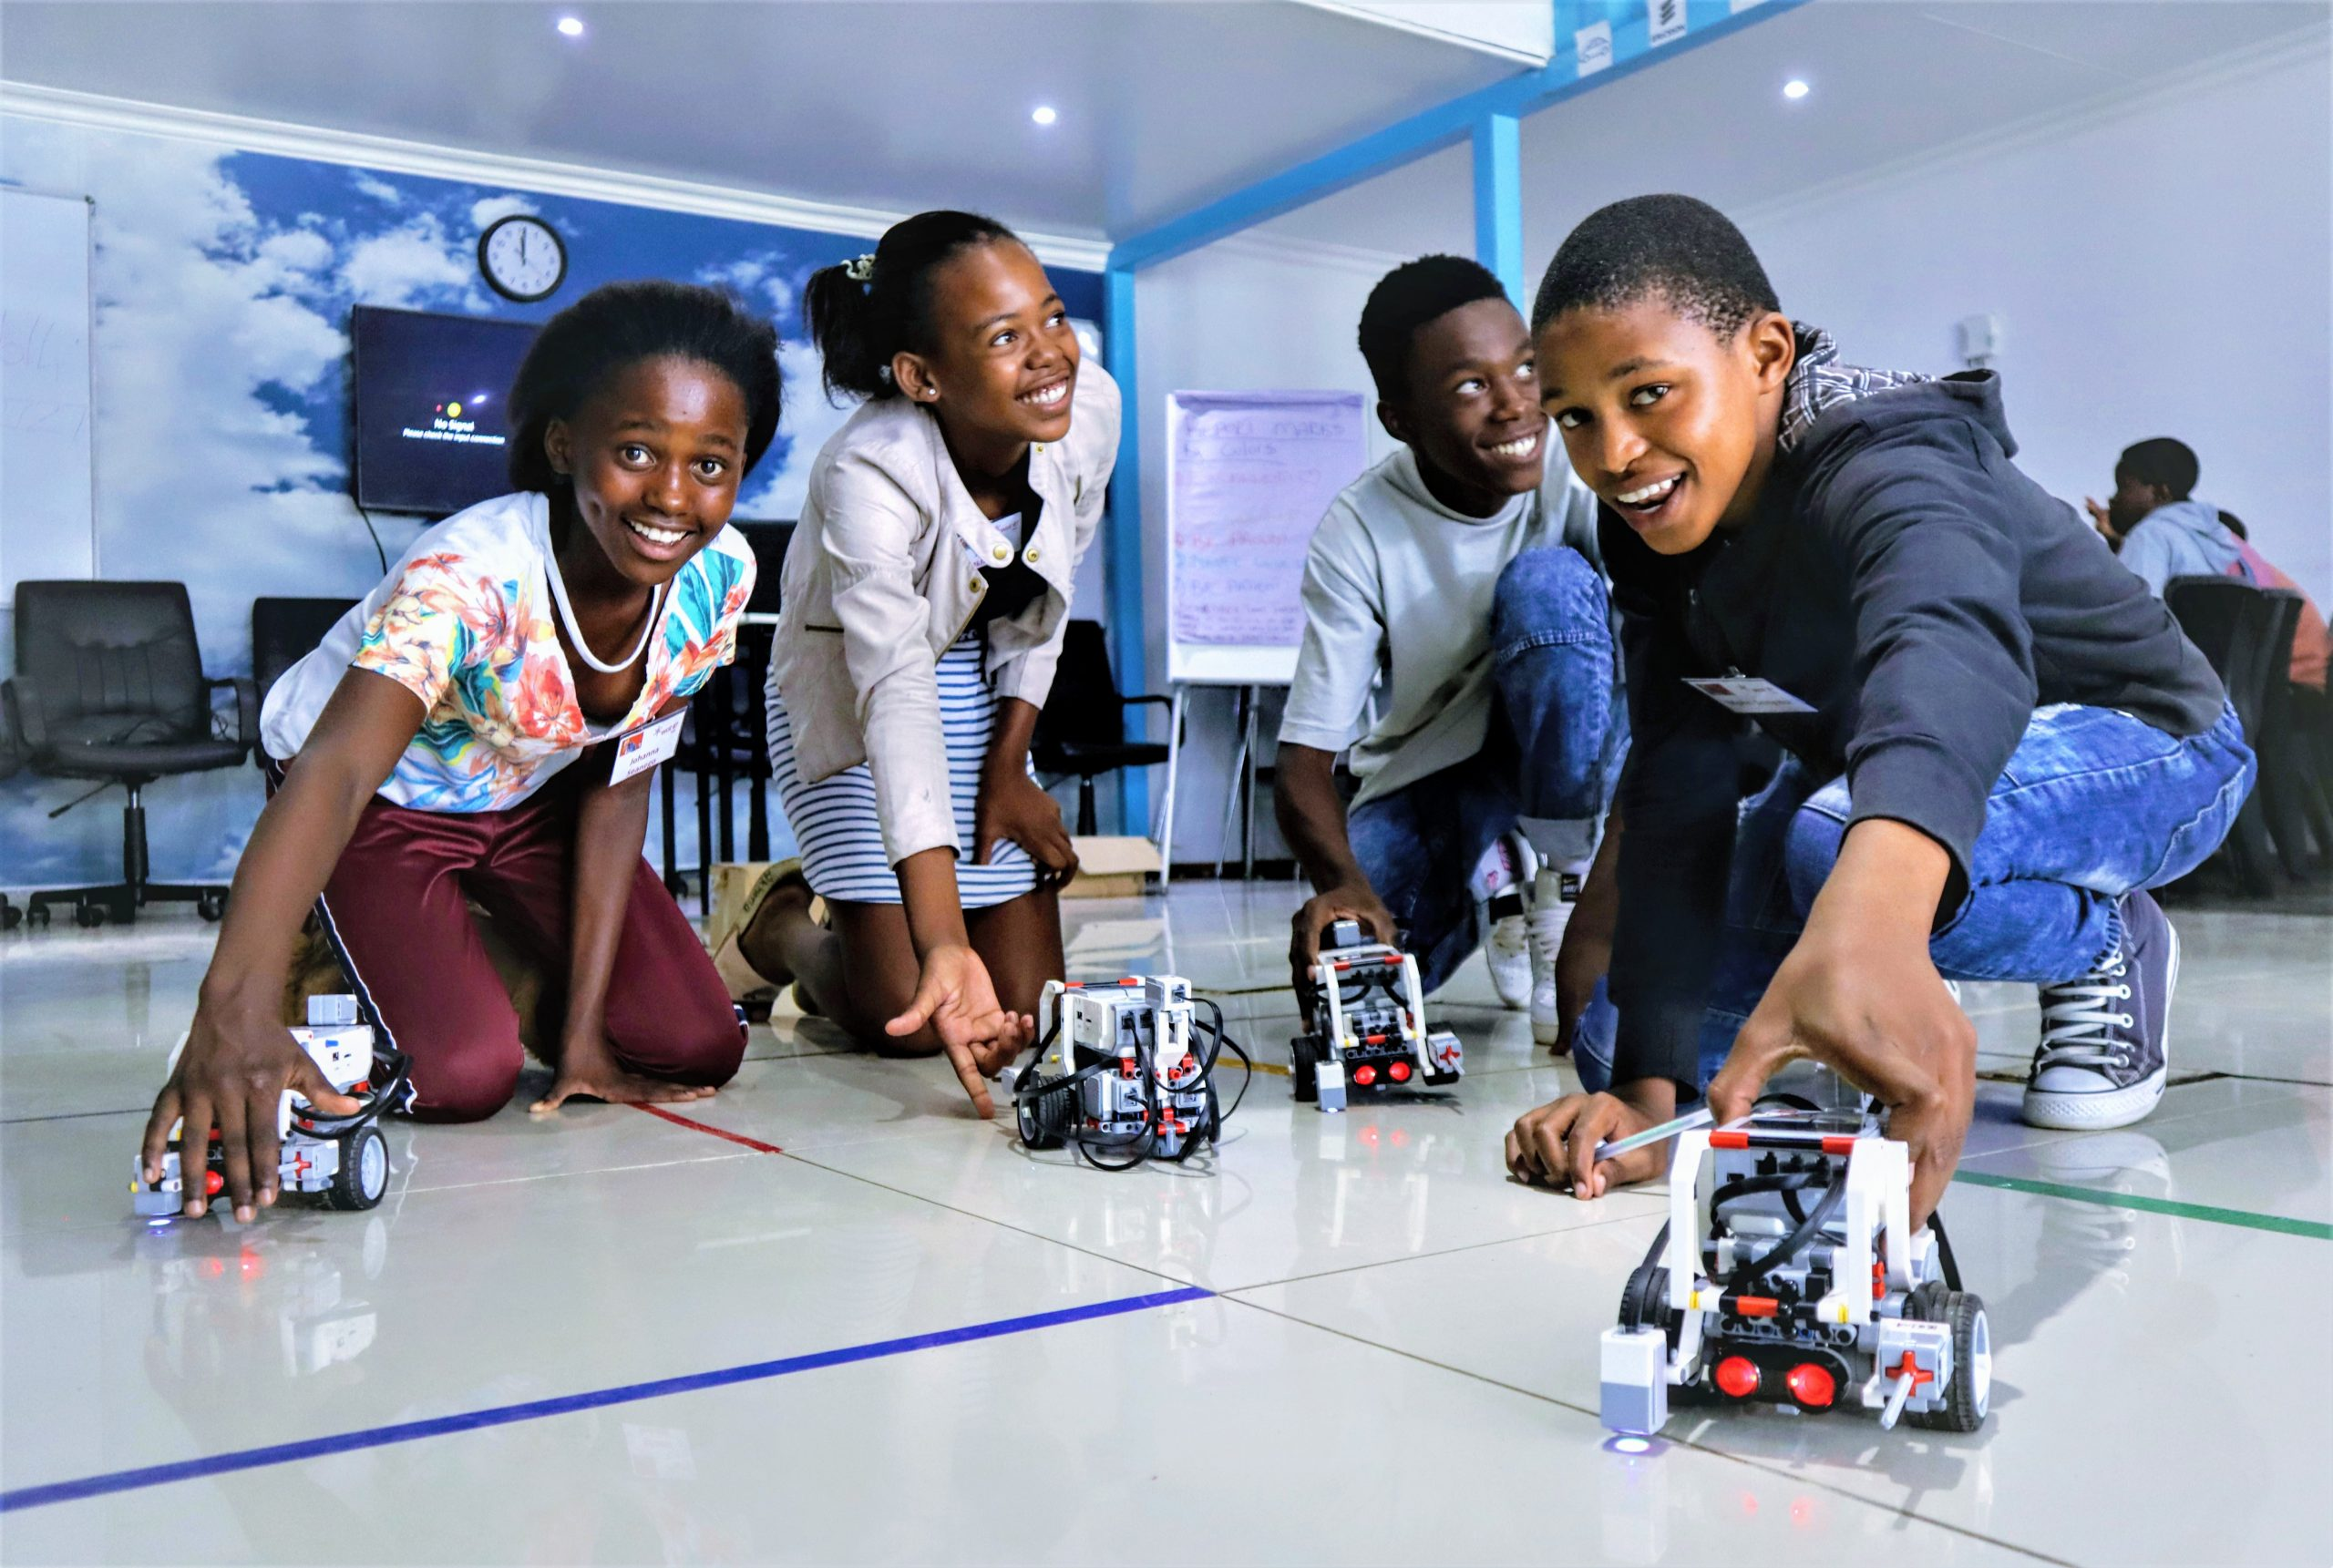 Digital lab kids posing with robots